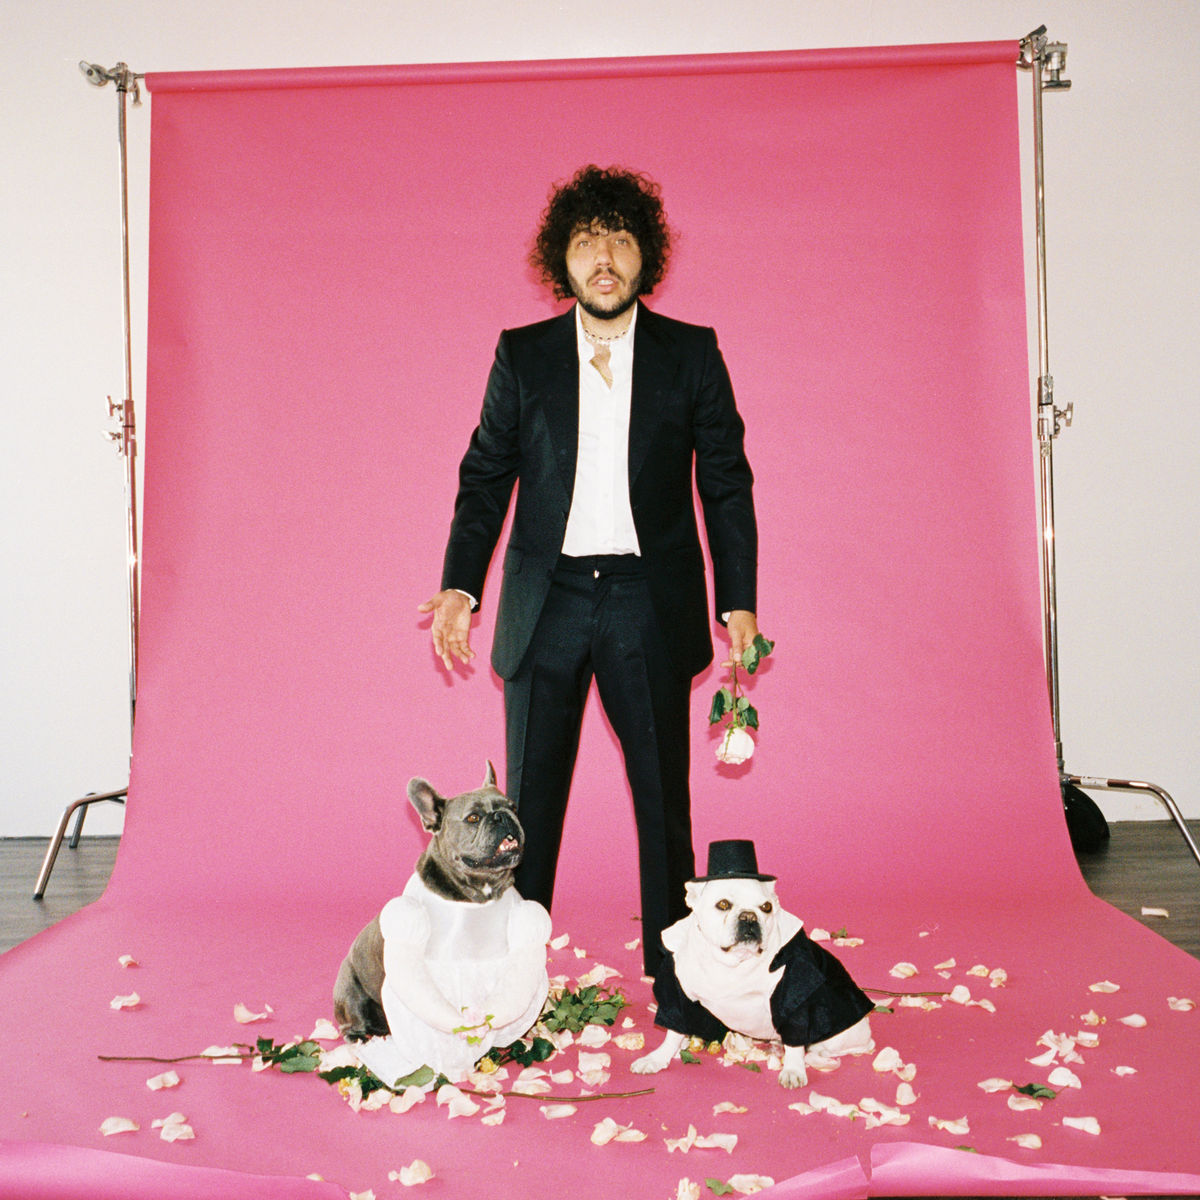 benny blanco eastside album art